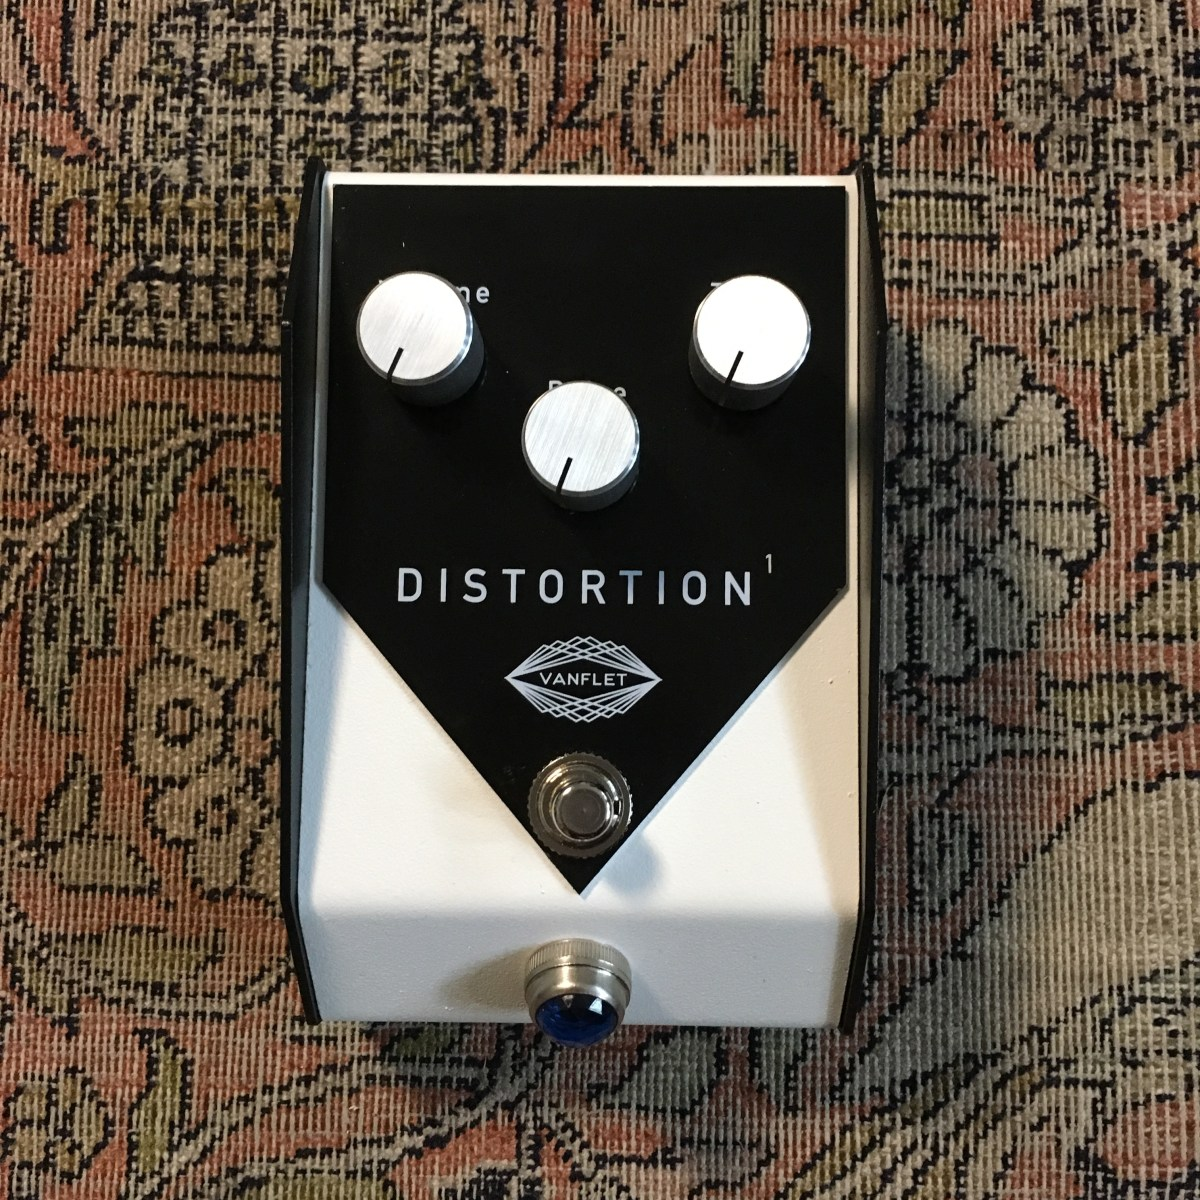 Pedal Review - Vanflet Distortion1: huge sounds from your pedalboard!